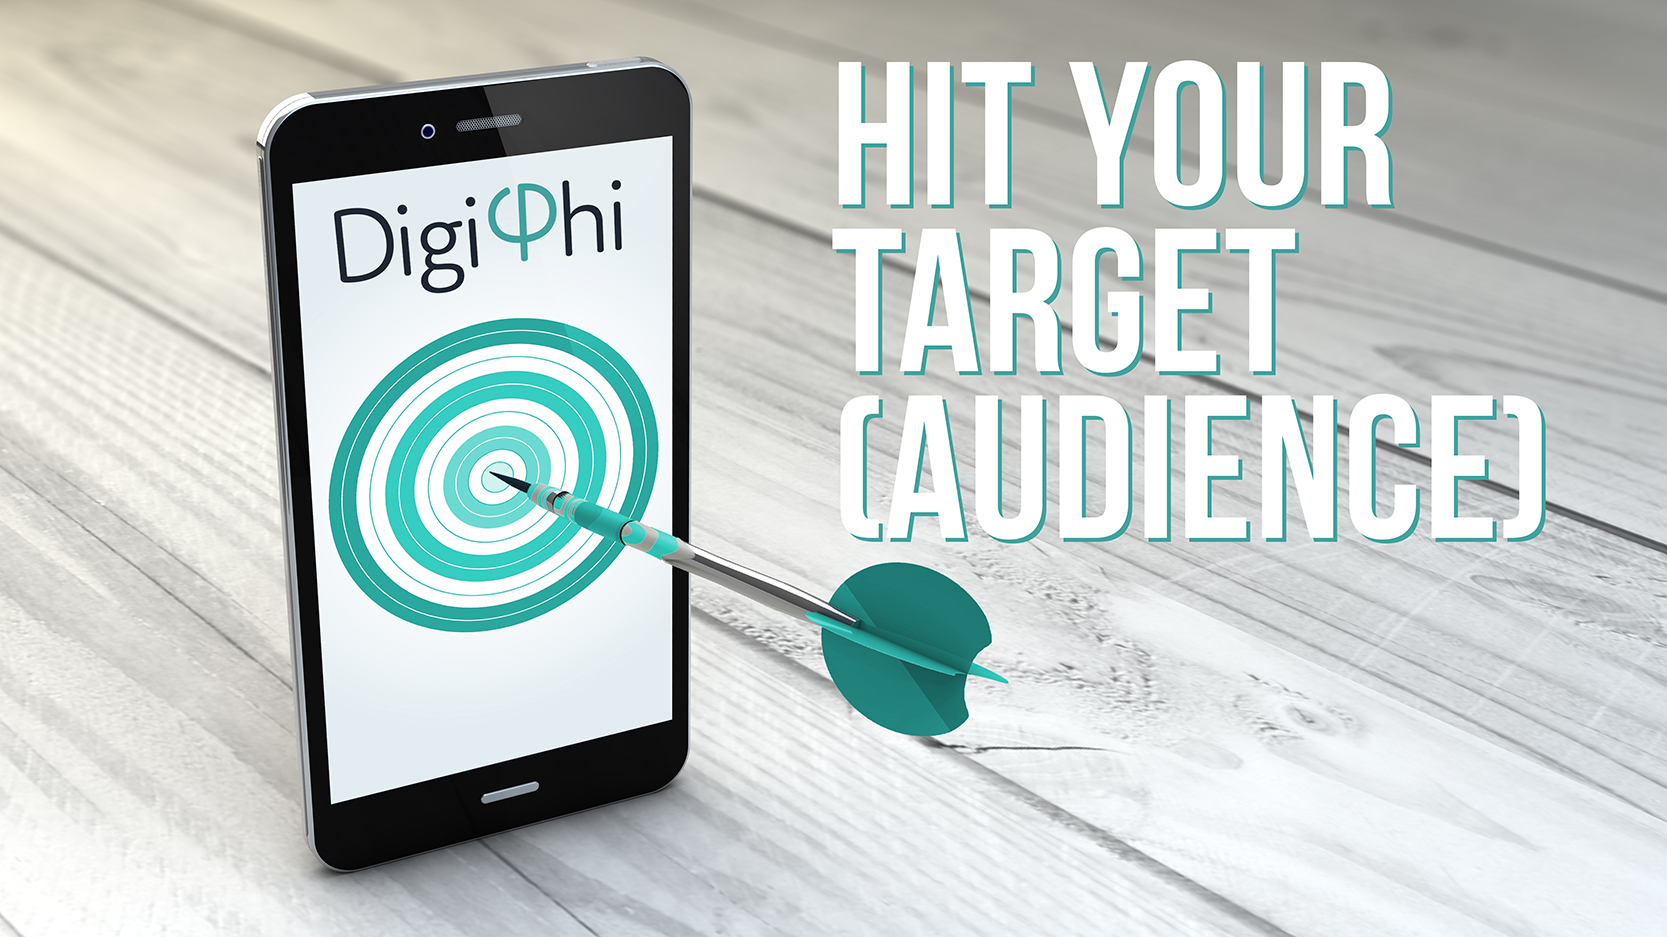 How to Hit Your Target Audience